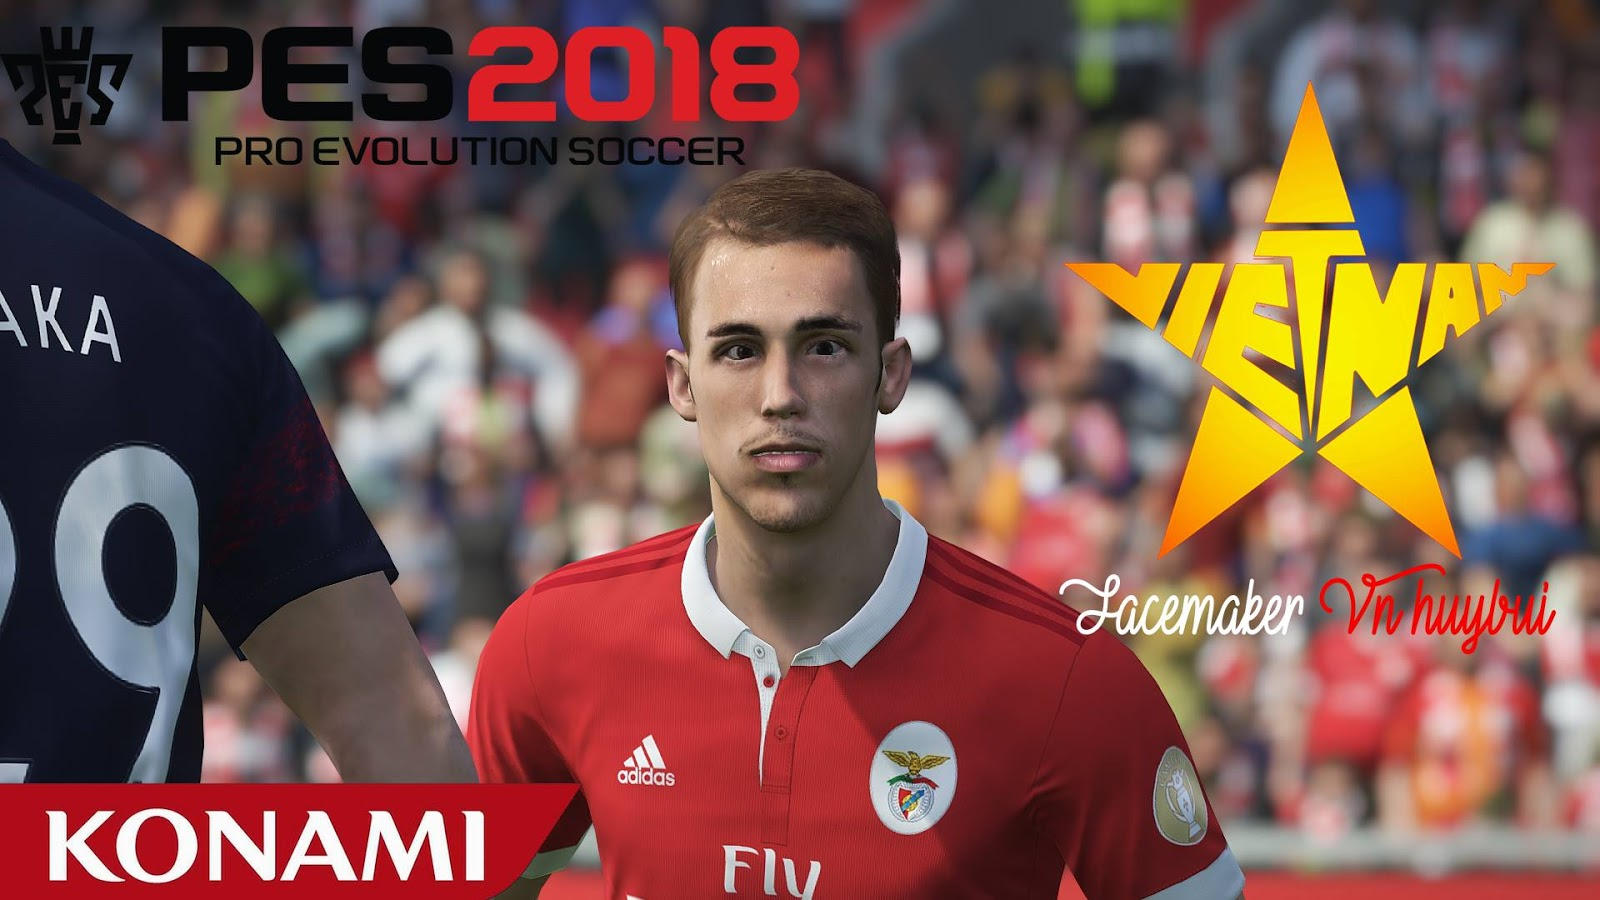 PES 2018 Alex Grimaldo Face by Facemaker VN HUY BUI